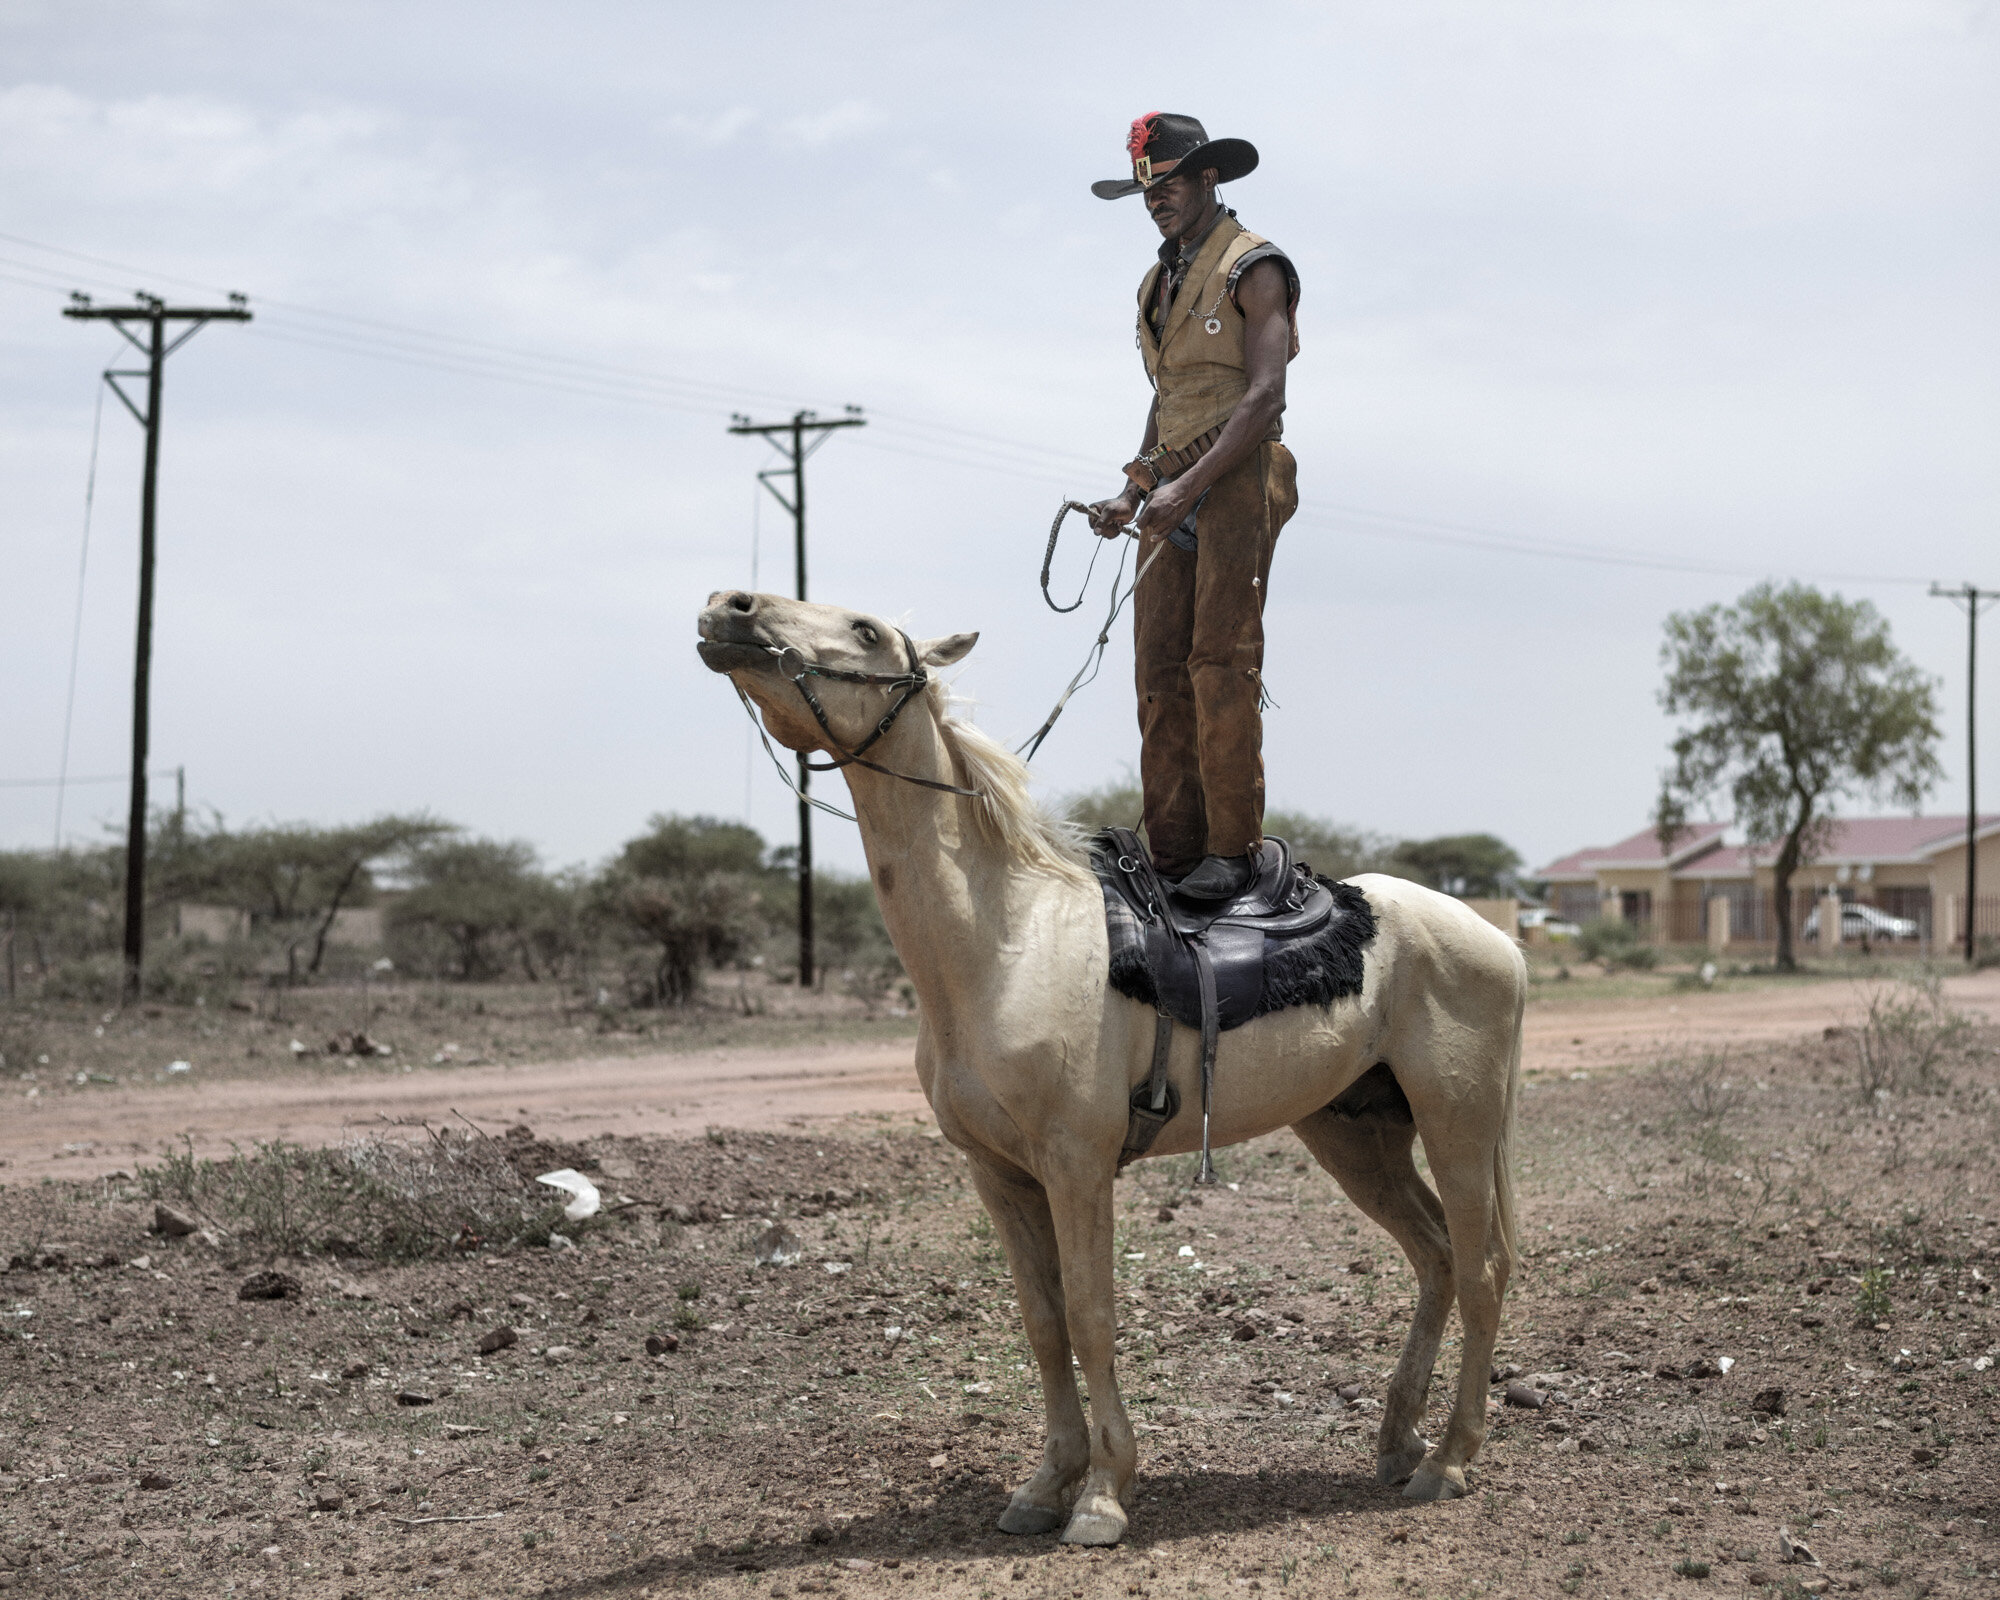 """Africa, Botswana, Gaborone, December 2015Photo by Pep Bonet / NOORPortrait of 38 years old """"King Taker""""I am a cowboy, I´m self employed and I deal with metal works such as welding and other stuff. I became a cowboy in 1993, I watched too much cowboy movies such as the good, bad and ugly and I was influenced, I wanted to be like them.  So in 2003 I became a brutal cowboy, I rode horses since at the age of 7 and half years, Im a cowboy who listen to metal because I love metal music, I have friends who are metal heads and I have spent the rest of my life in metal scene and attending shows, my favorite bands are Amon Amarth and Manowar. Today I was riding a Golden horse by the name Class."""